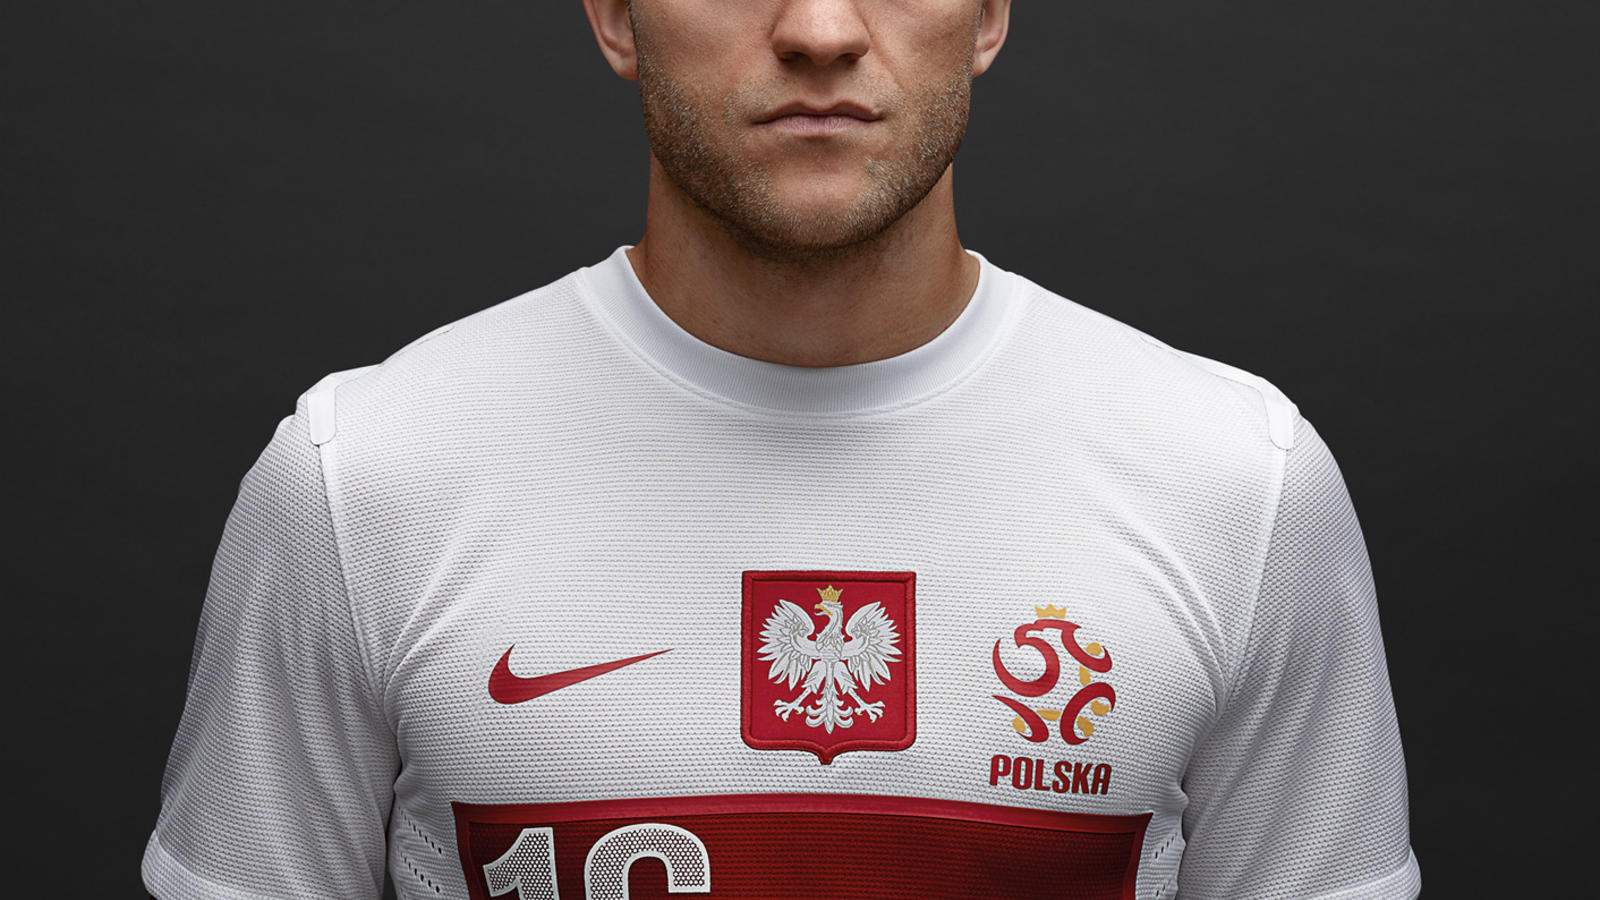 new poland national team kit celebrates return of the eagle nike